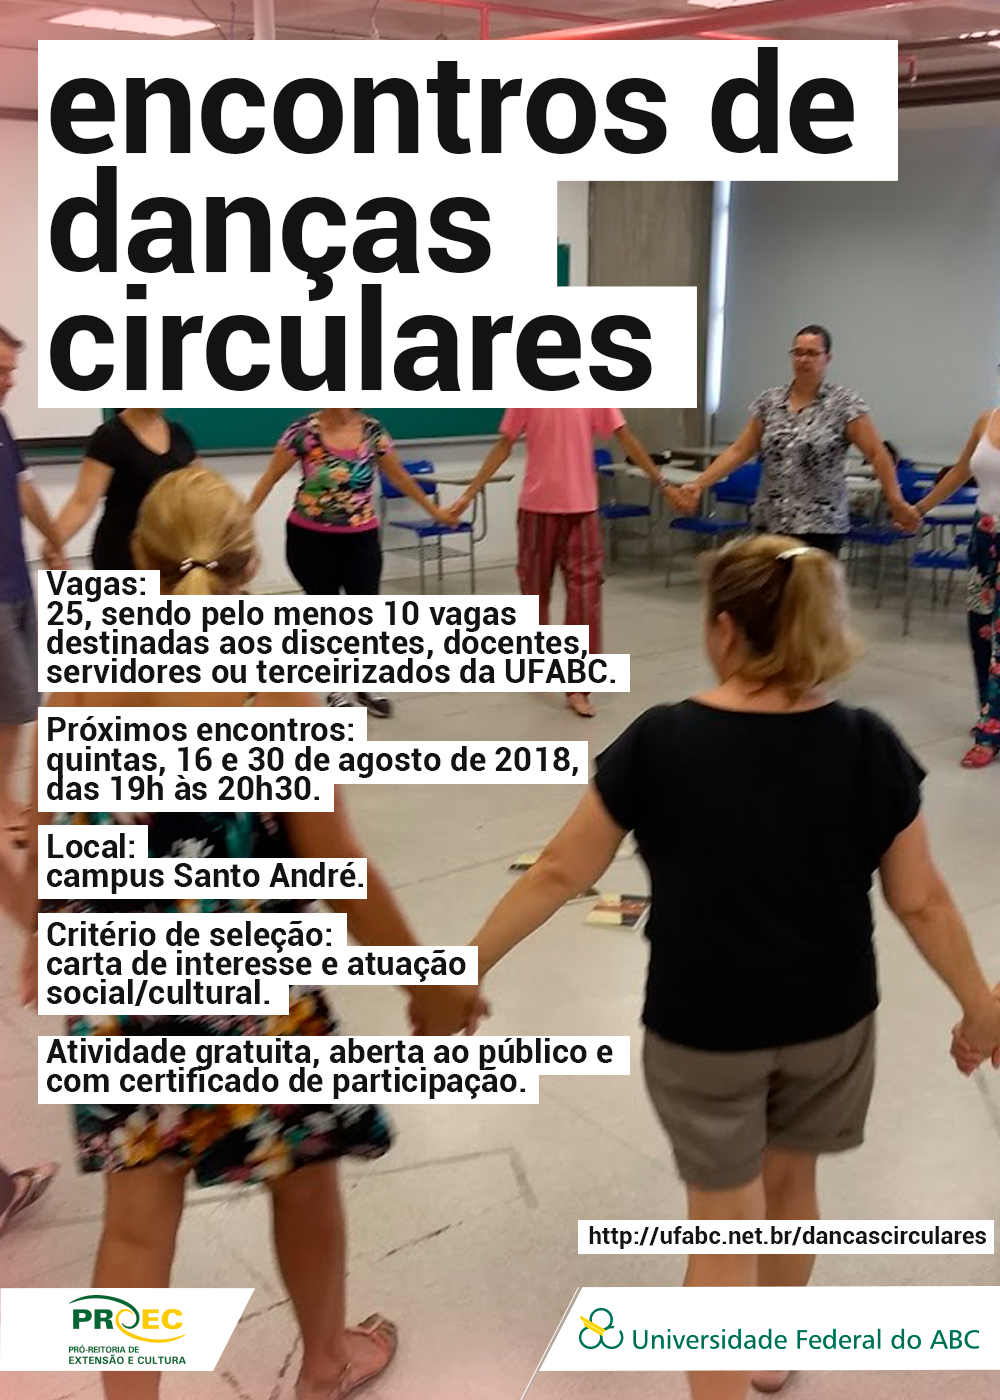 dancas circulares post facebook